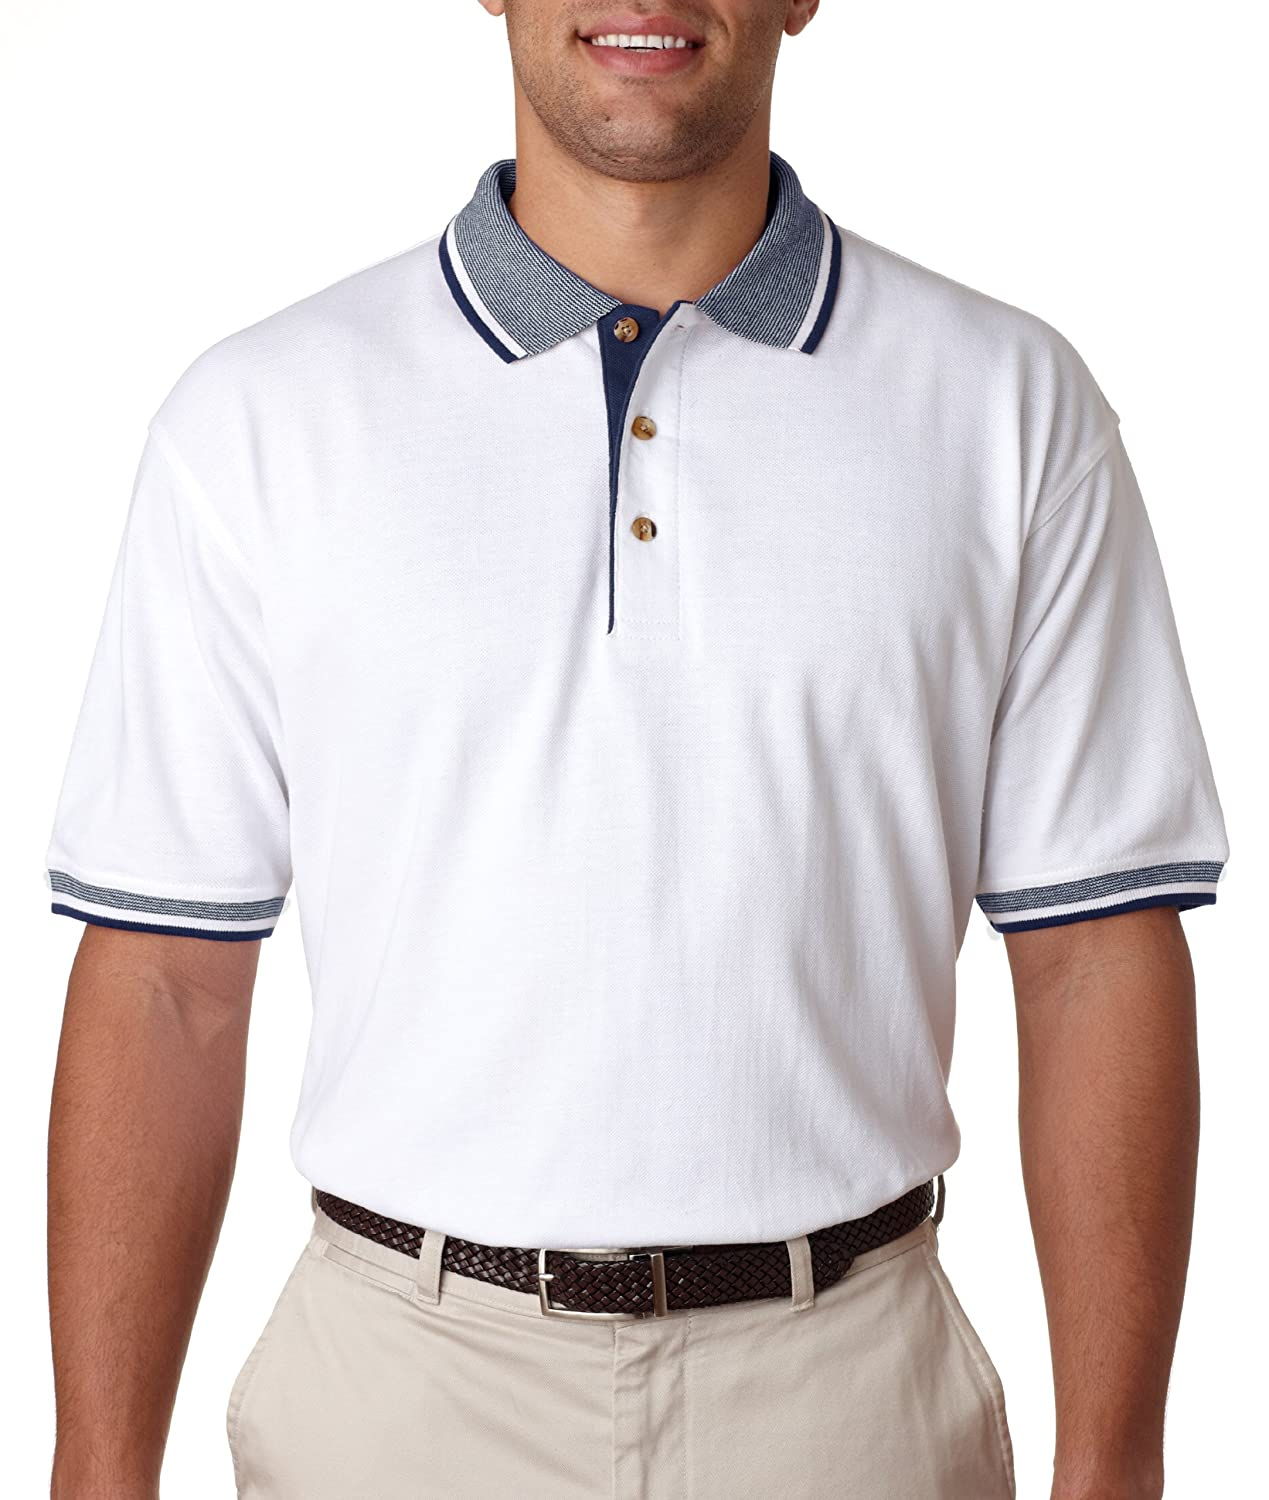 UltraClub Mens Classic Pique Polo with Contrasting Multi-Stripe Trim 8536